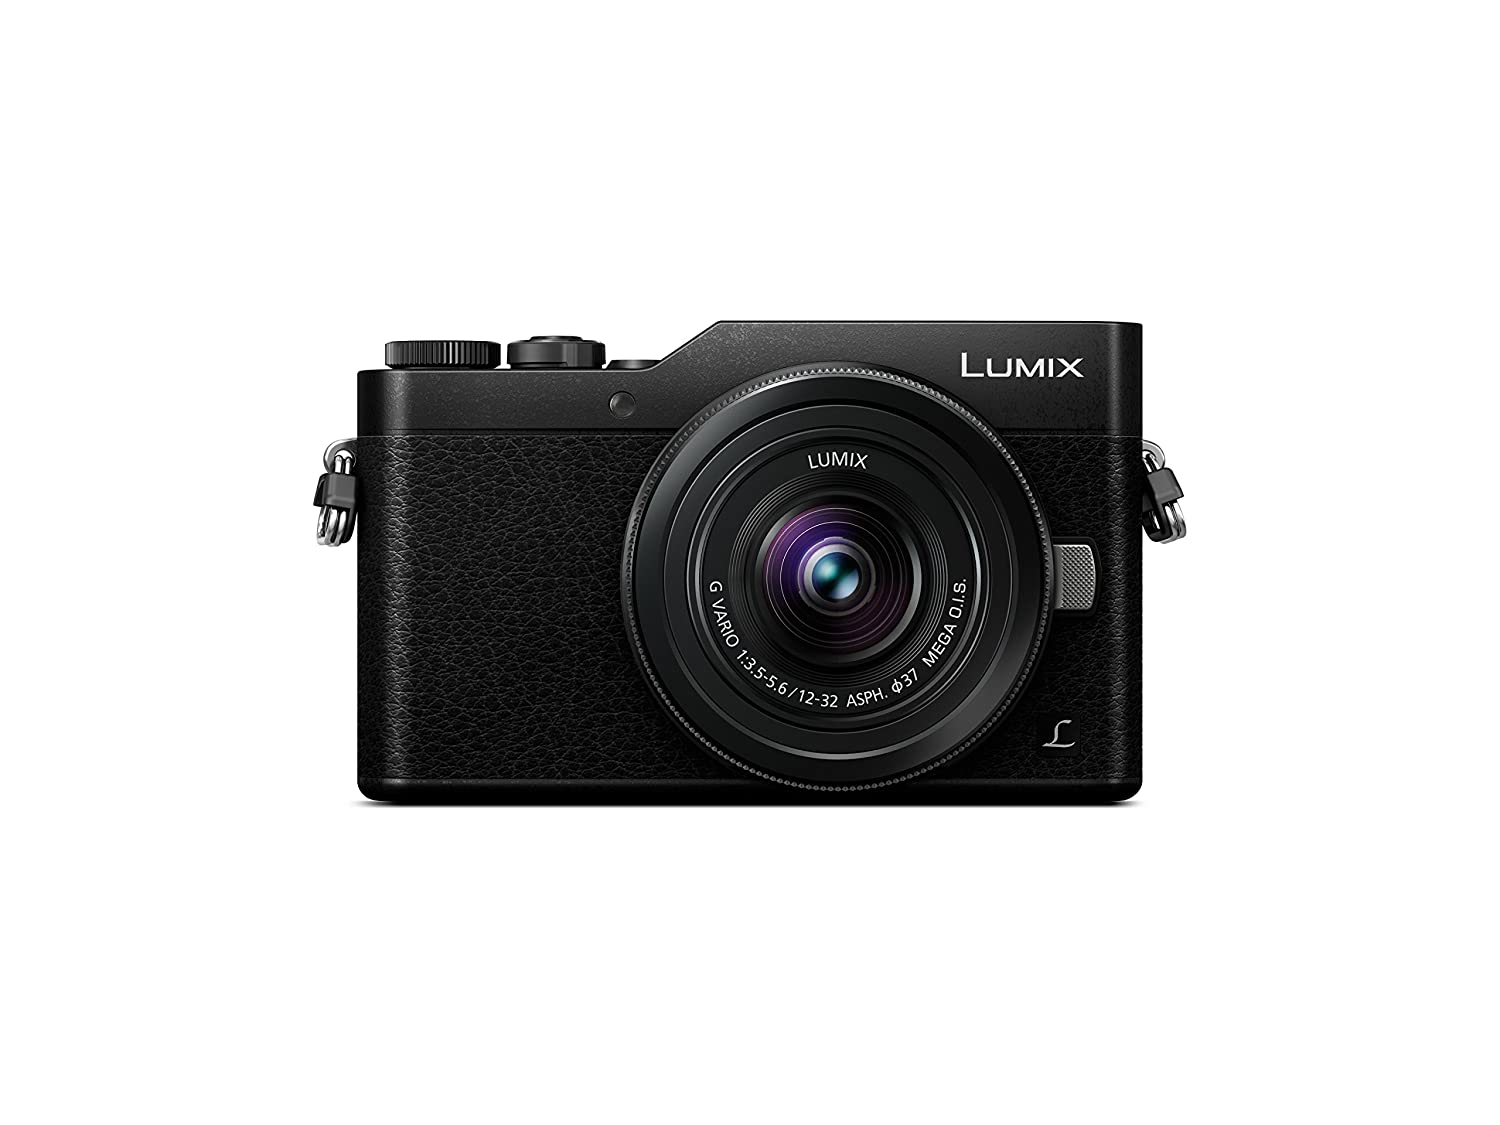 Amazon.com : PANASONIC LUMIX GX850 4K Mirrorless Camera with 12 ...